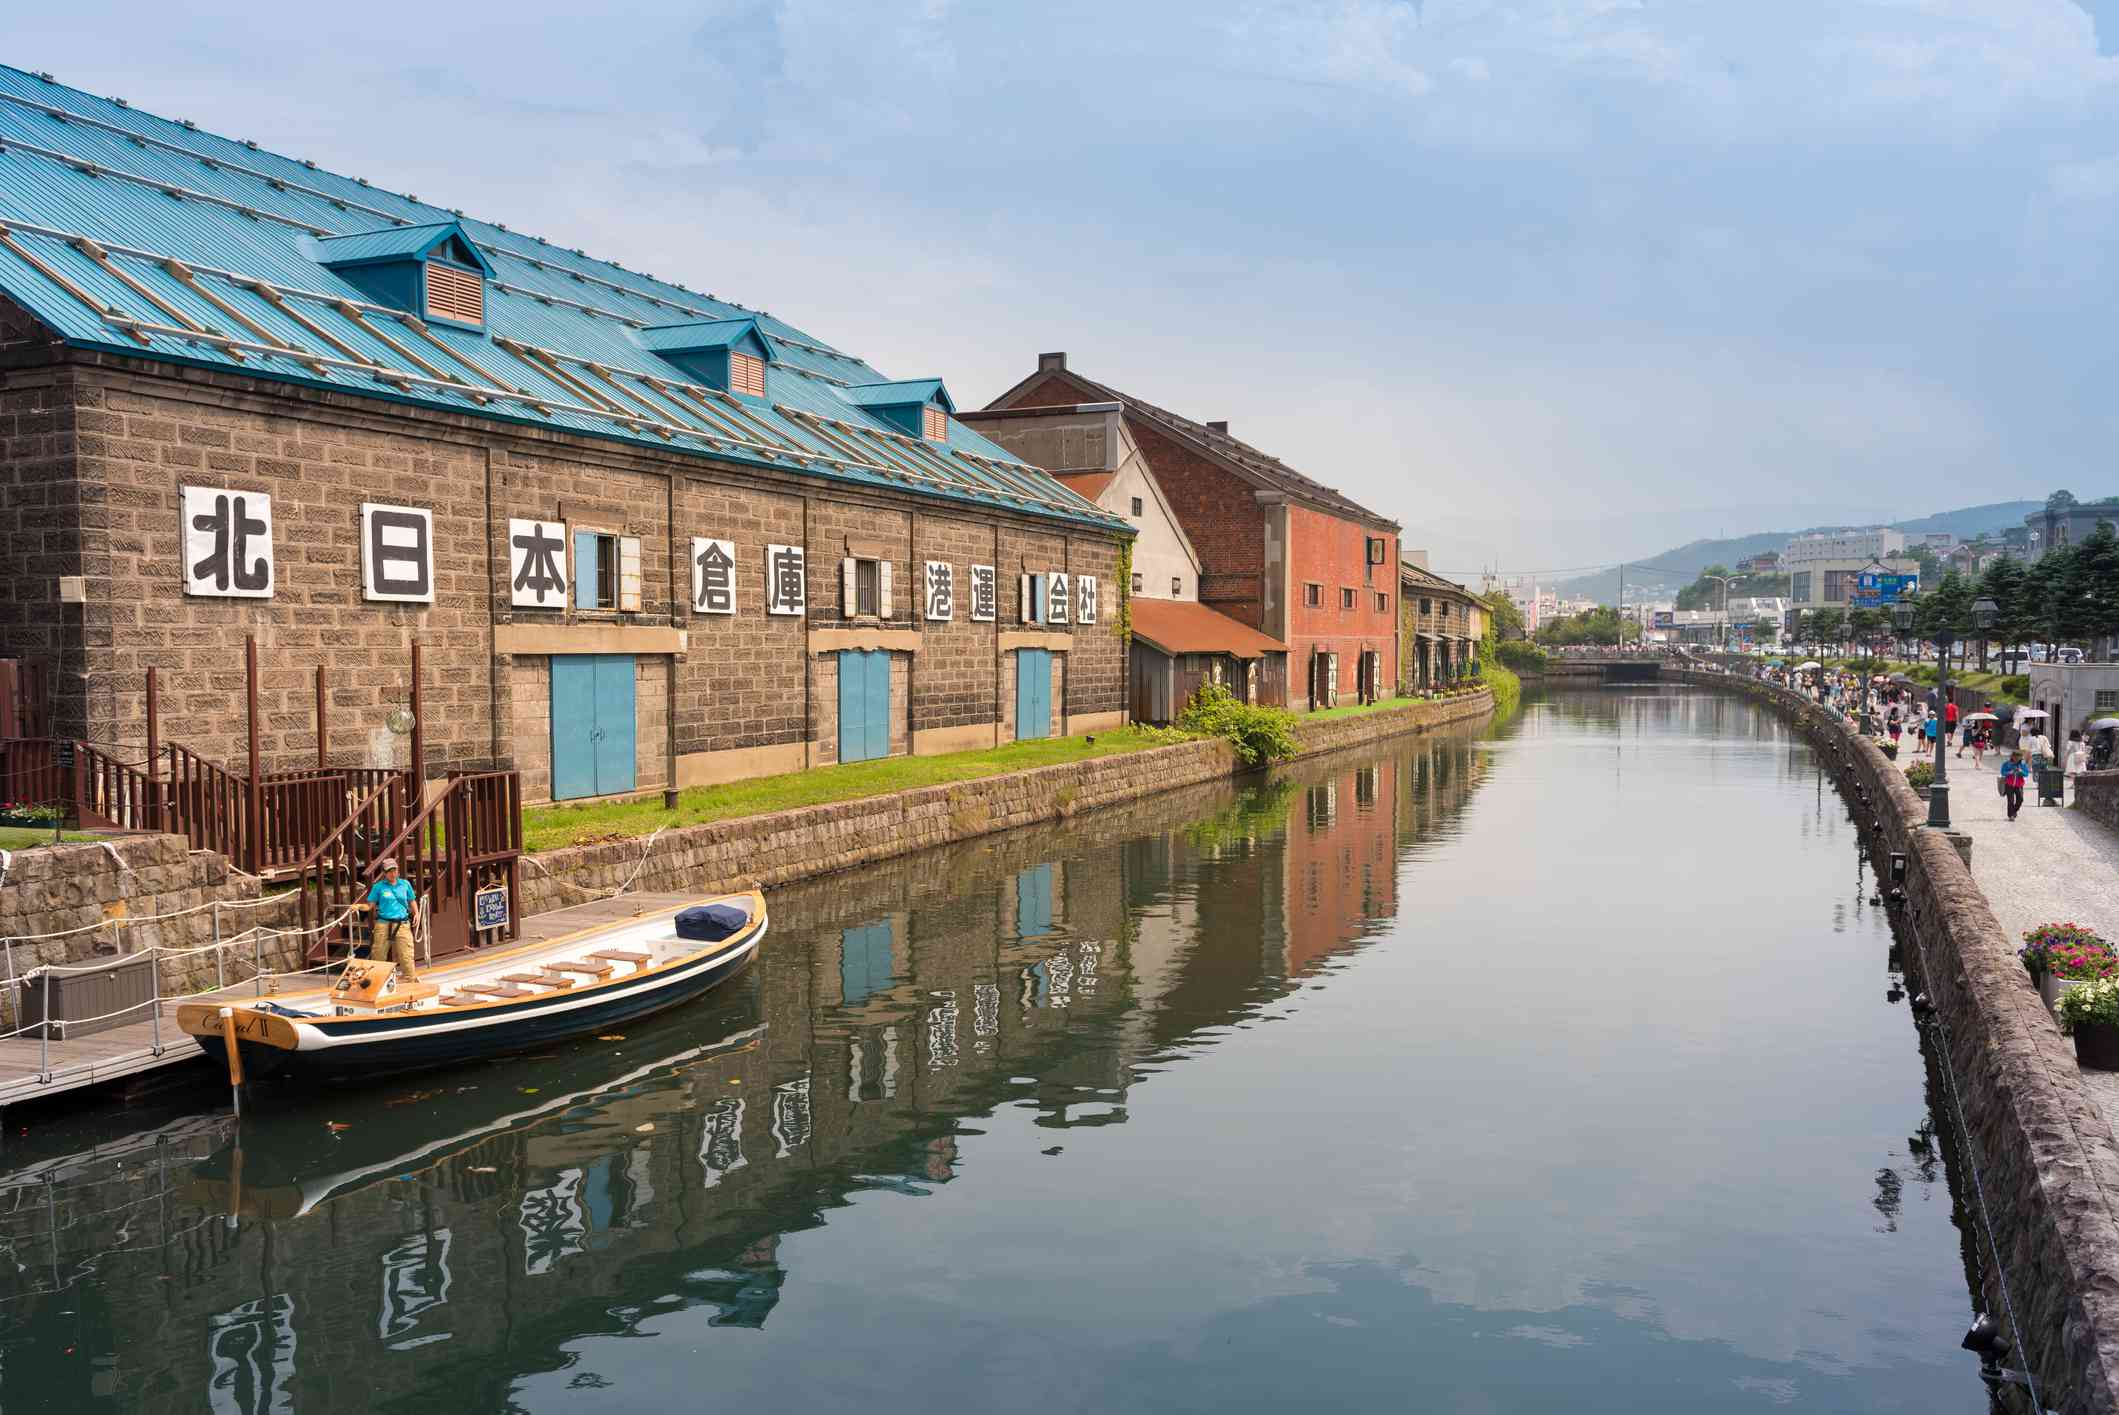 buildings and a lone boat on a canal in Japan